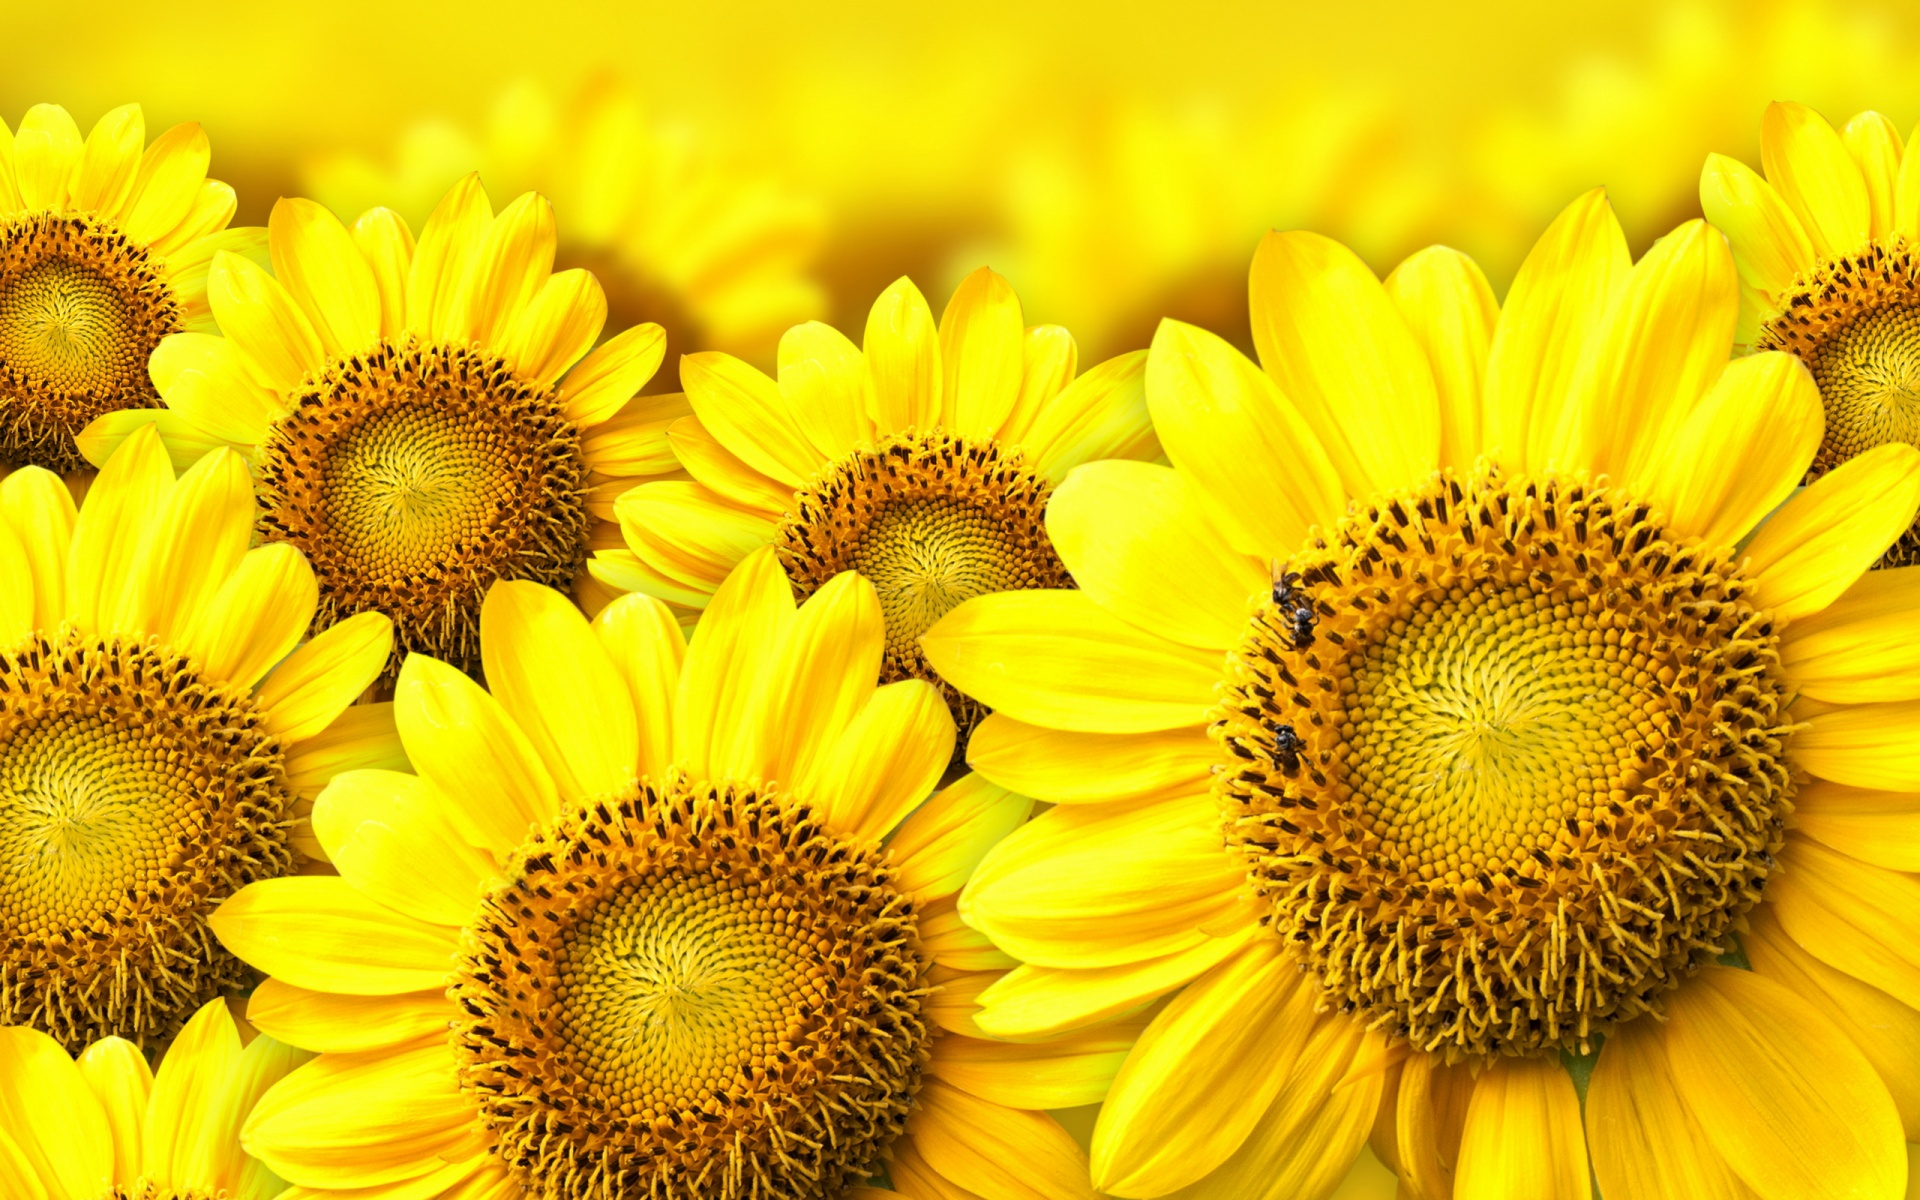 Sunflower Wallpapers Full HD